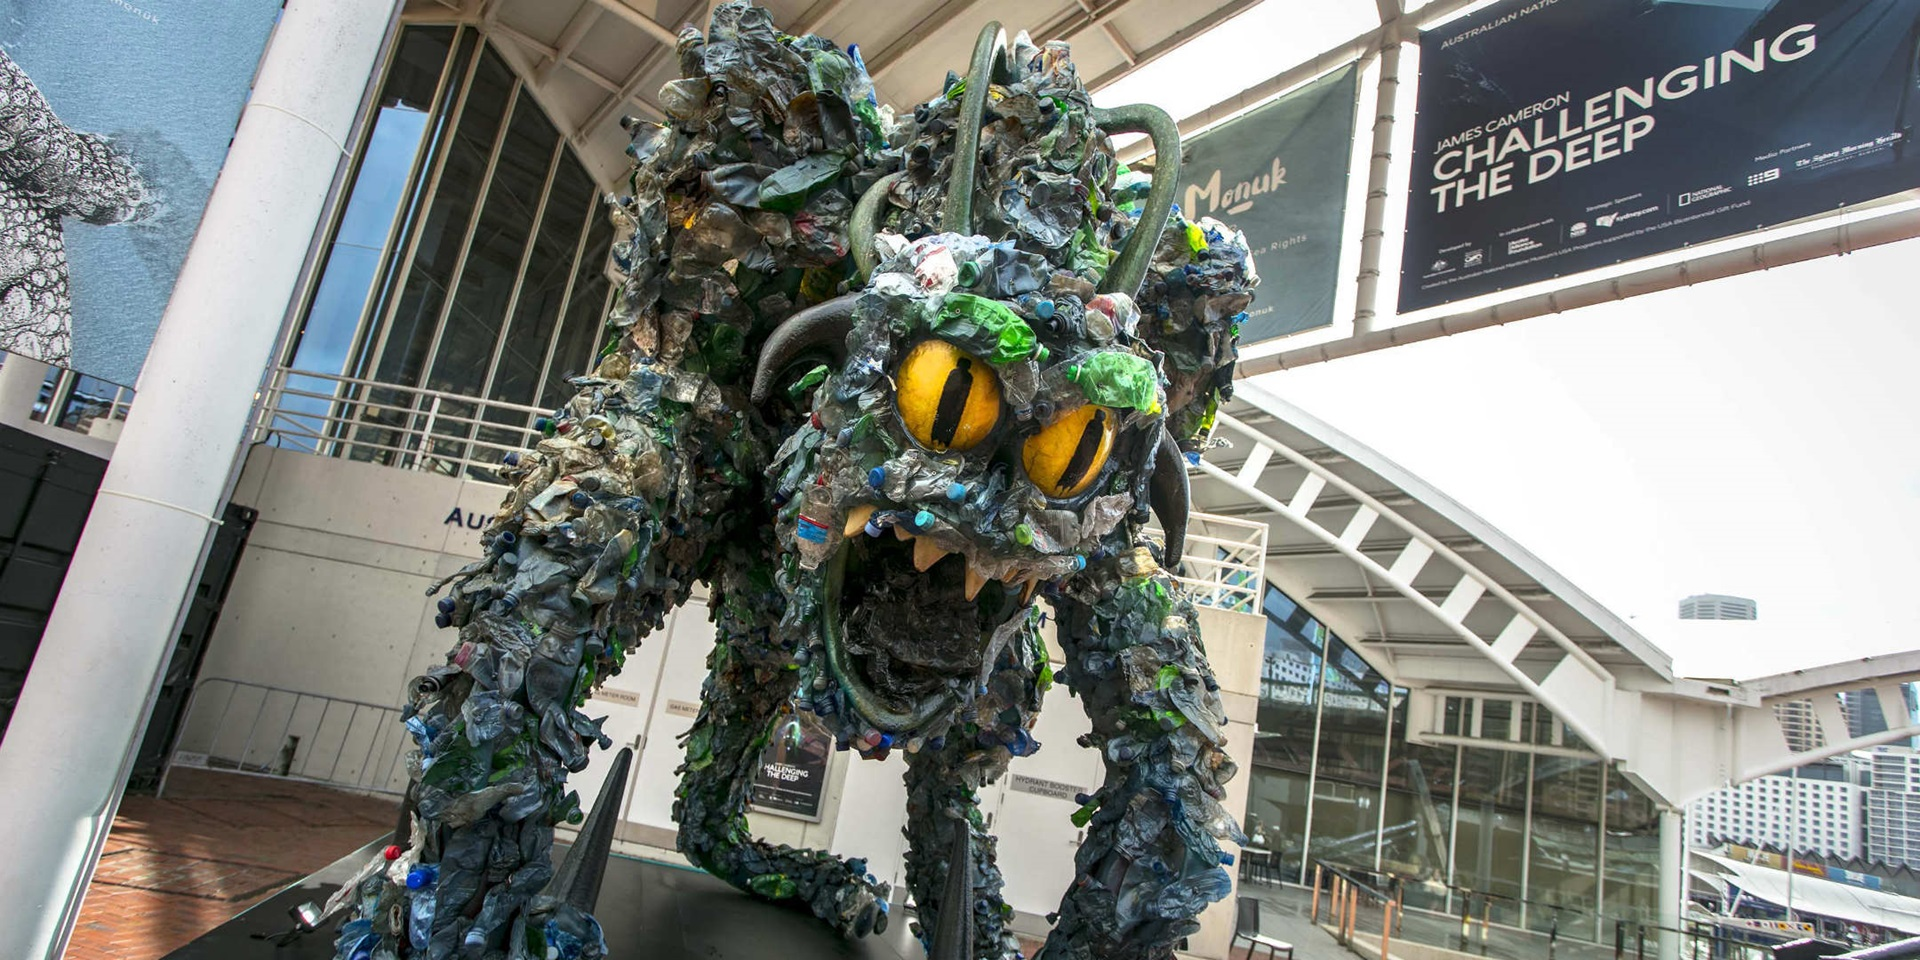 """The Beast"" made from 2,400 recycled plastic bottles and towering over at close to 4 meters high"